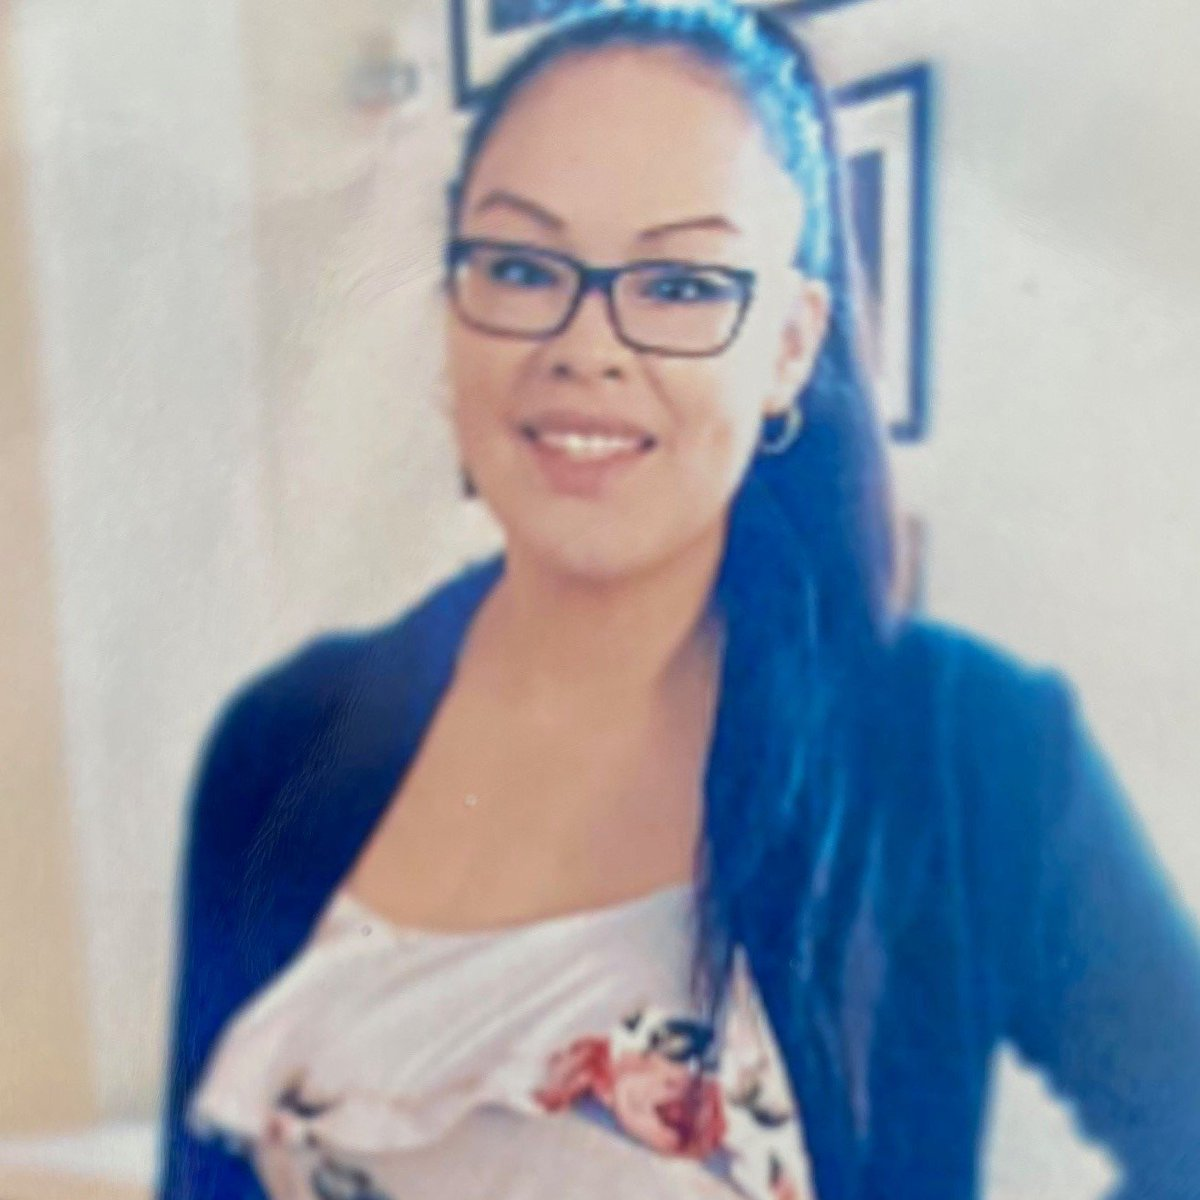 Missing woman from #OnionLake may be in #yeg: Shaylene Heathen (25 y/o) was last seen on August 20, 2021. She's 5'7, 130 lbs, has brown eyes, long brown hair and wears glasses. Tattoo of an elephant on right forearm. RCMP say she may be in Edmonton. RT?